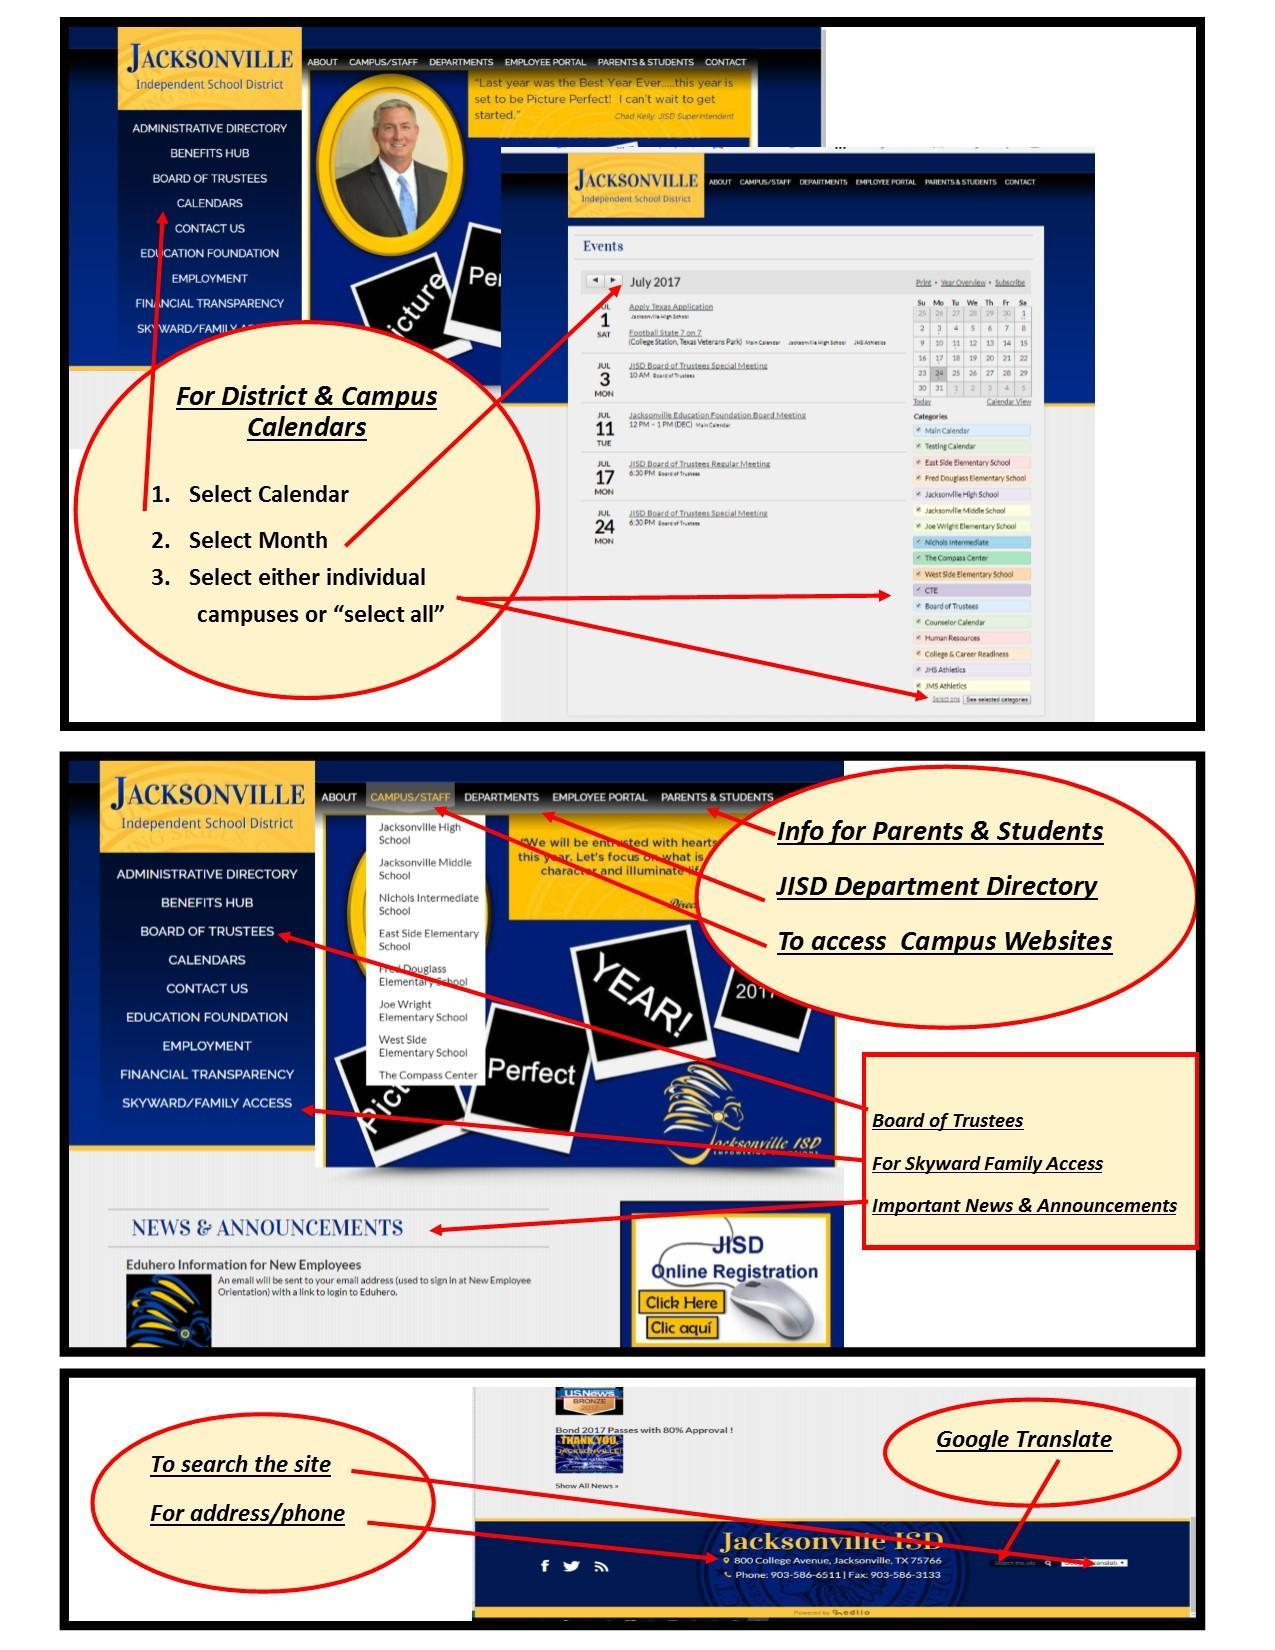 picture of the home webpage with instructions